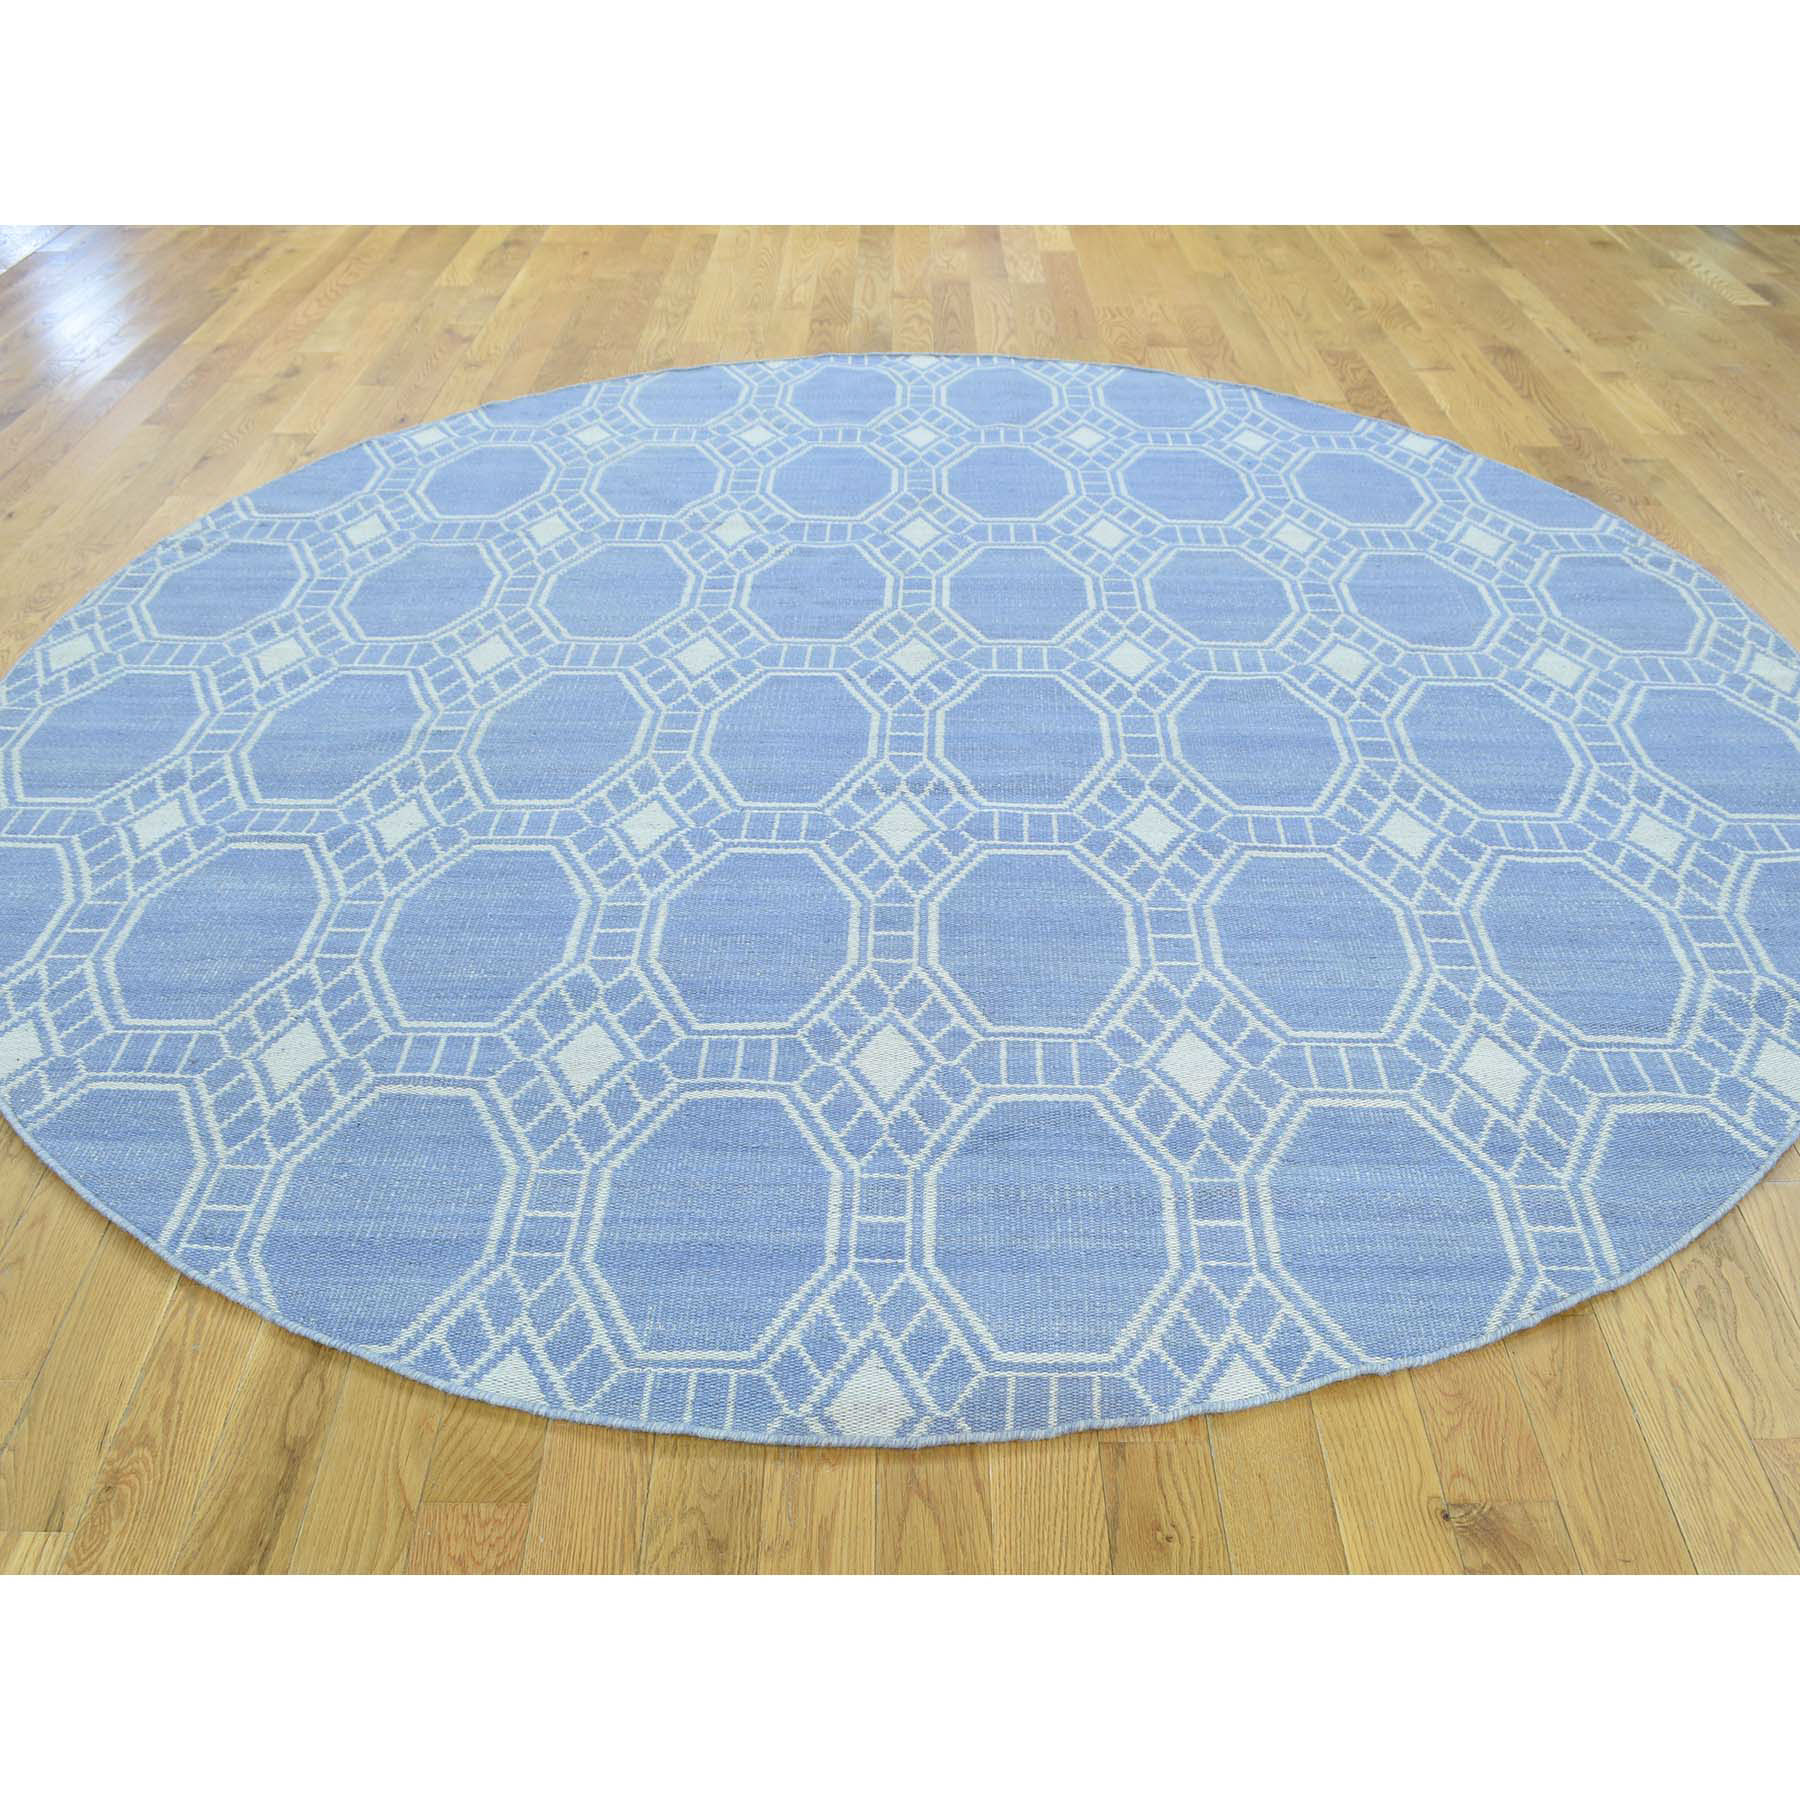 6-x6- Hand-Woven Flat Weave Reversible Durie Kilim Round Rug